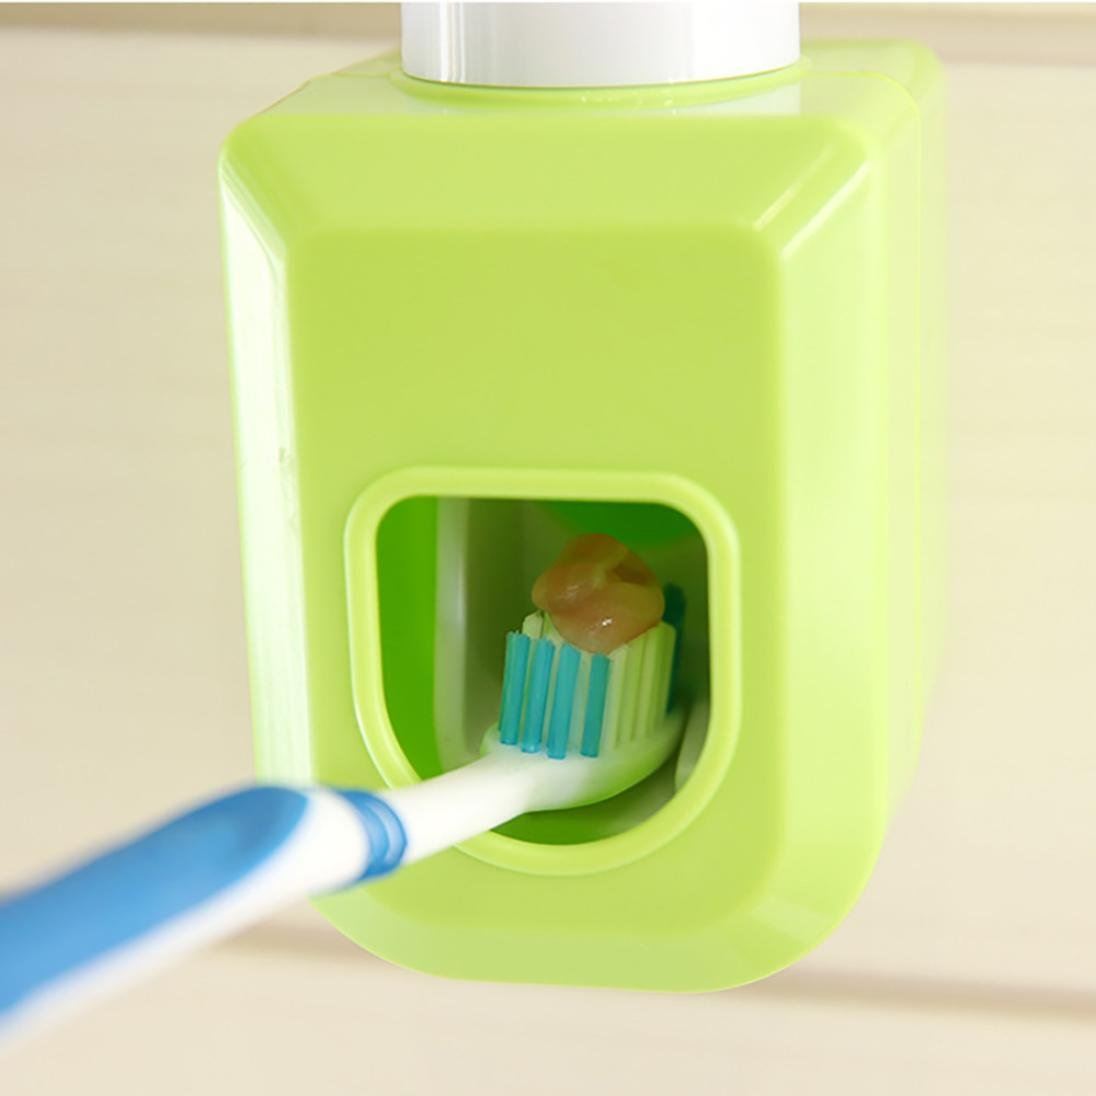 Dreamyth Automatic Auto Squeezer Toothpaste Dispenser Hands Free Squeeze Out Practical (Green)